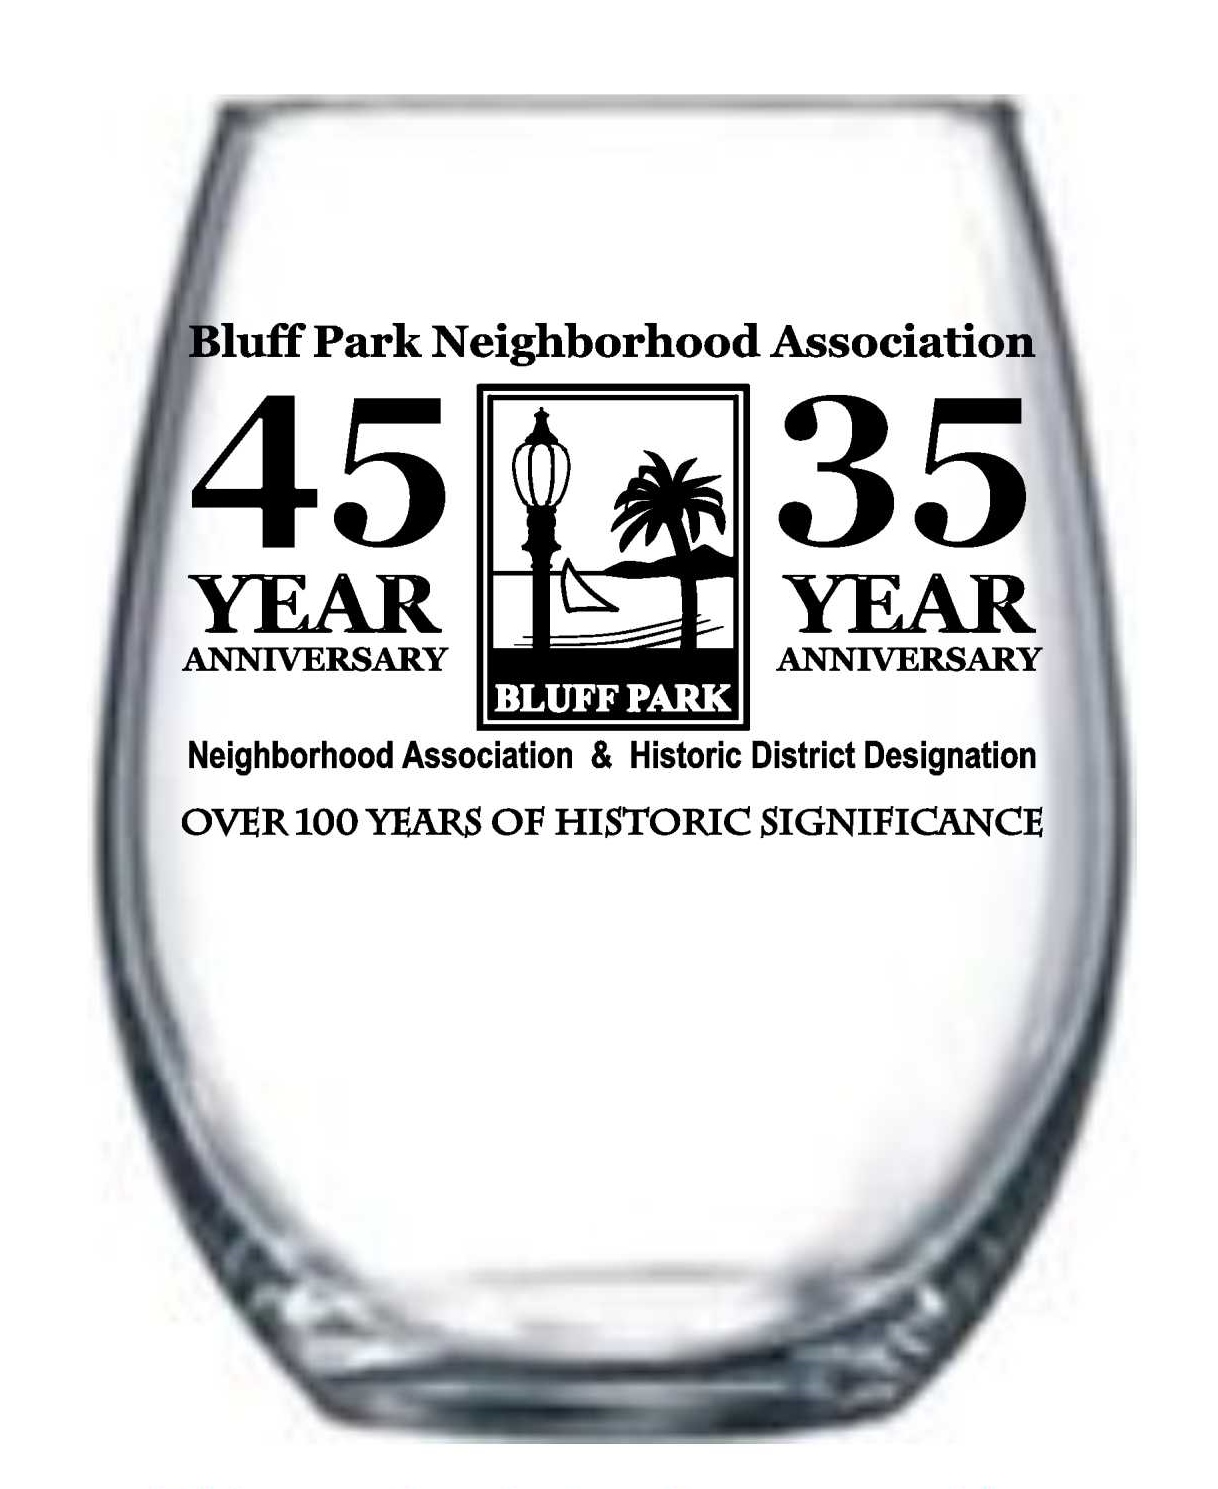 Wine Glasses for BPNA Anniversary